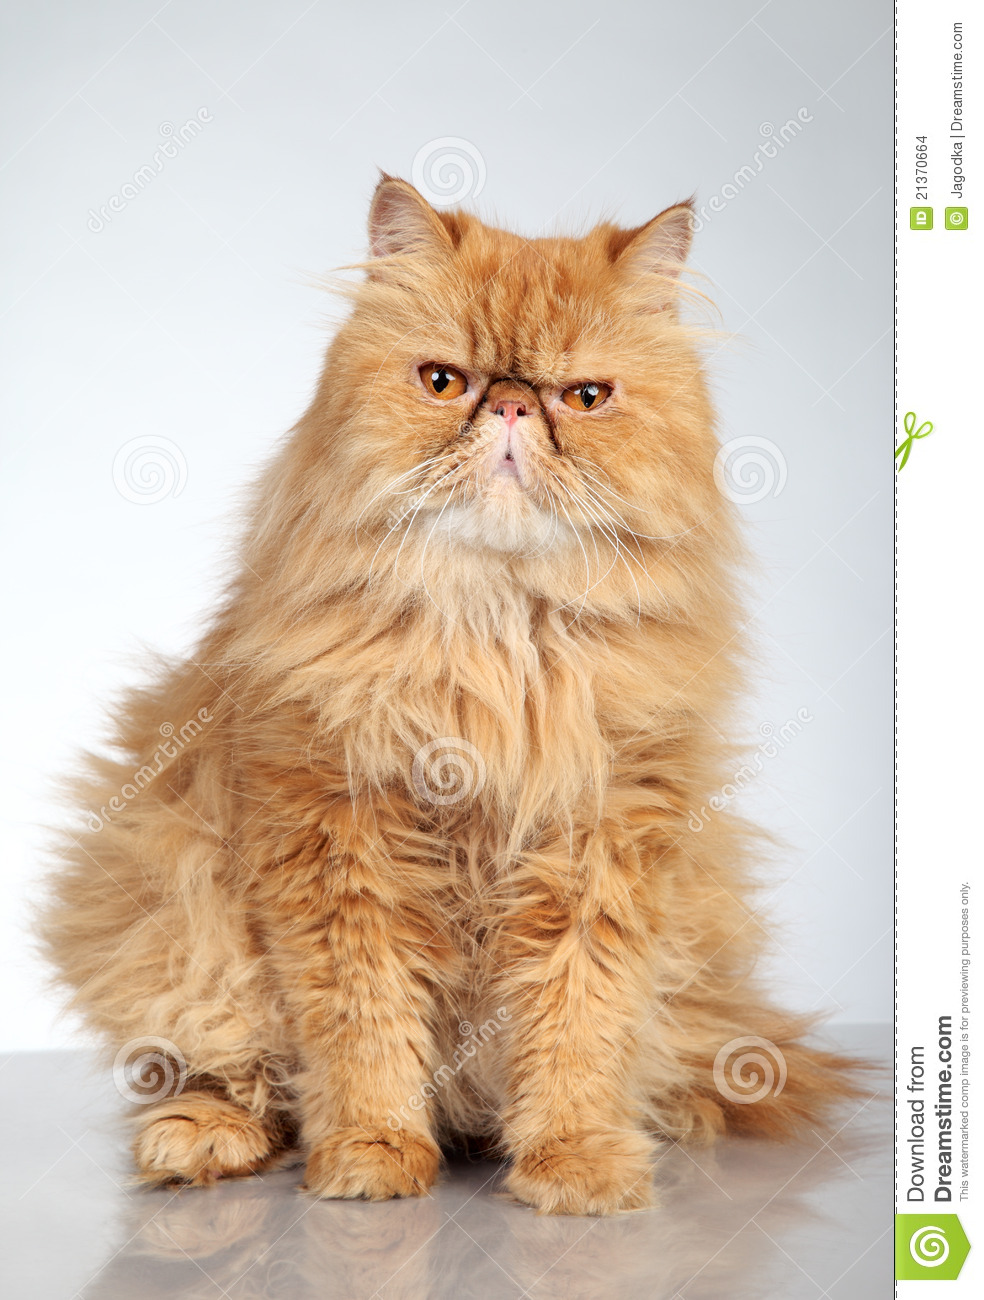 Ginger Persian cat stock photo  Image of orange, angry - 21370664